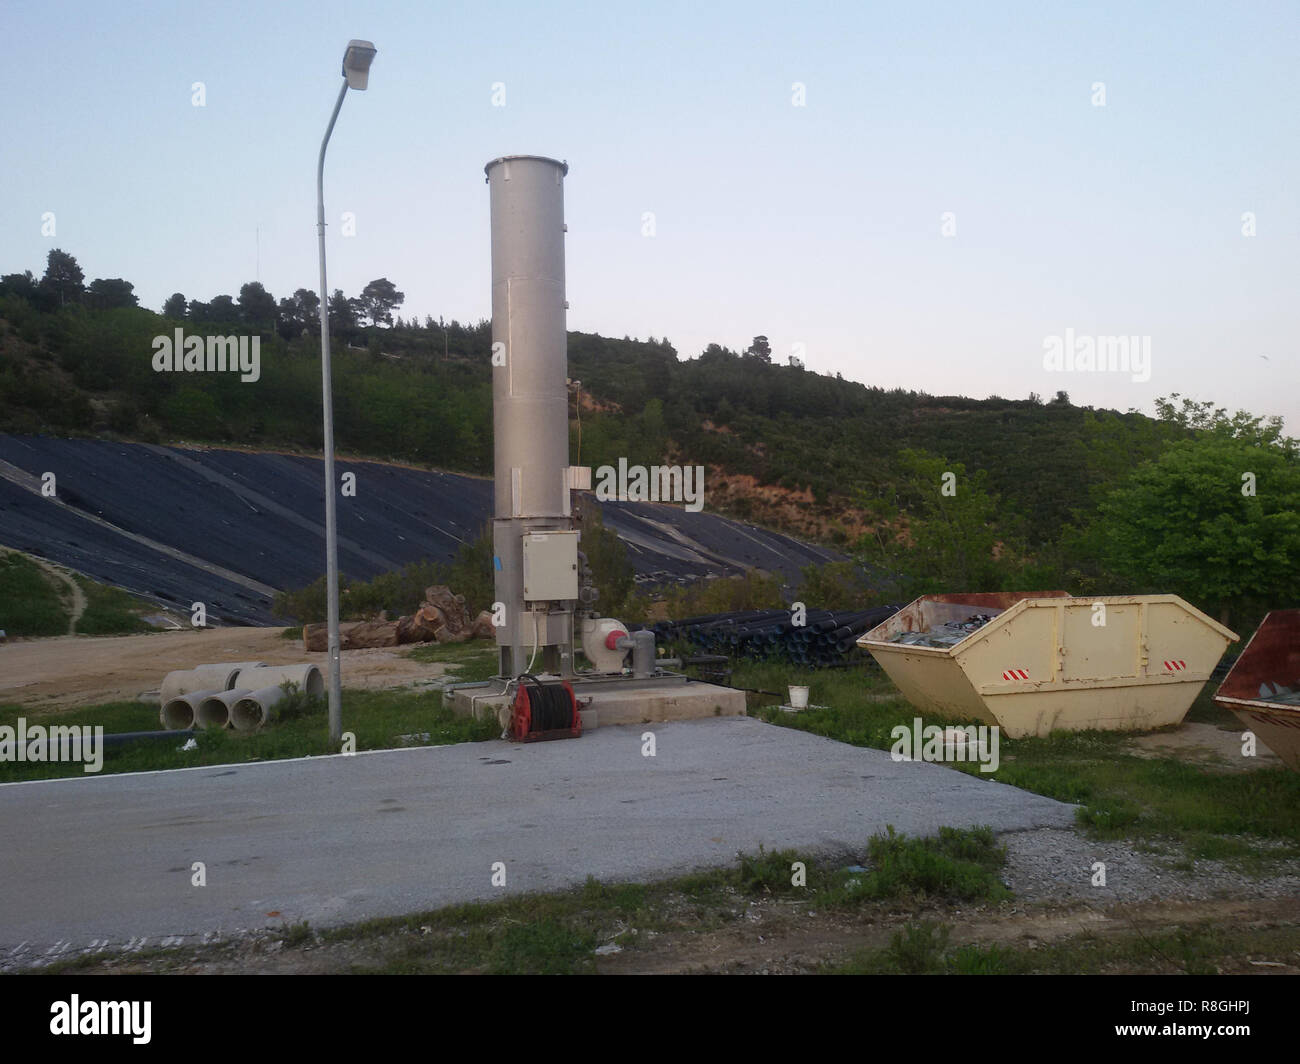 View of a sanitary landfill including a biogas flare, hdpe pipes, a skip container and the cell covered with Geo-textile membrane - Stock Image